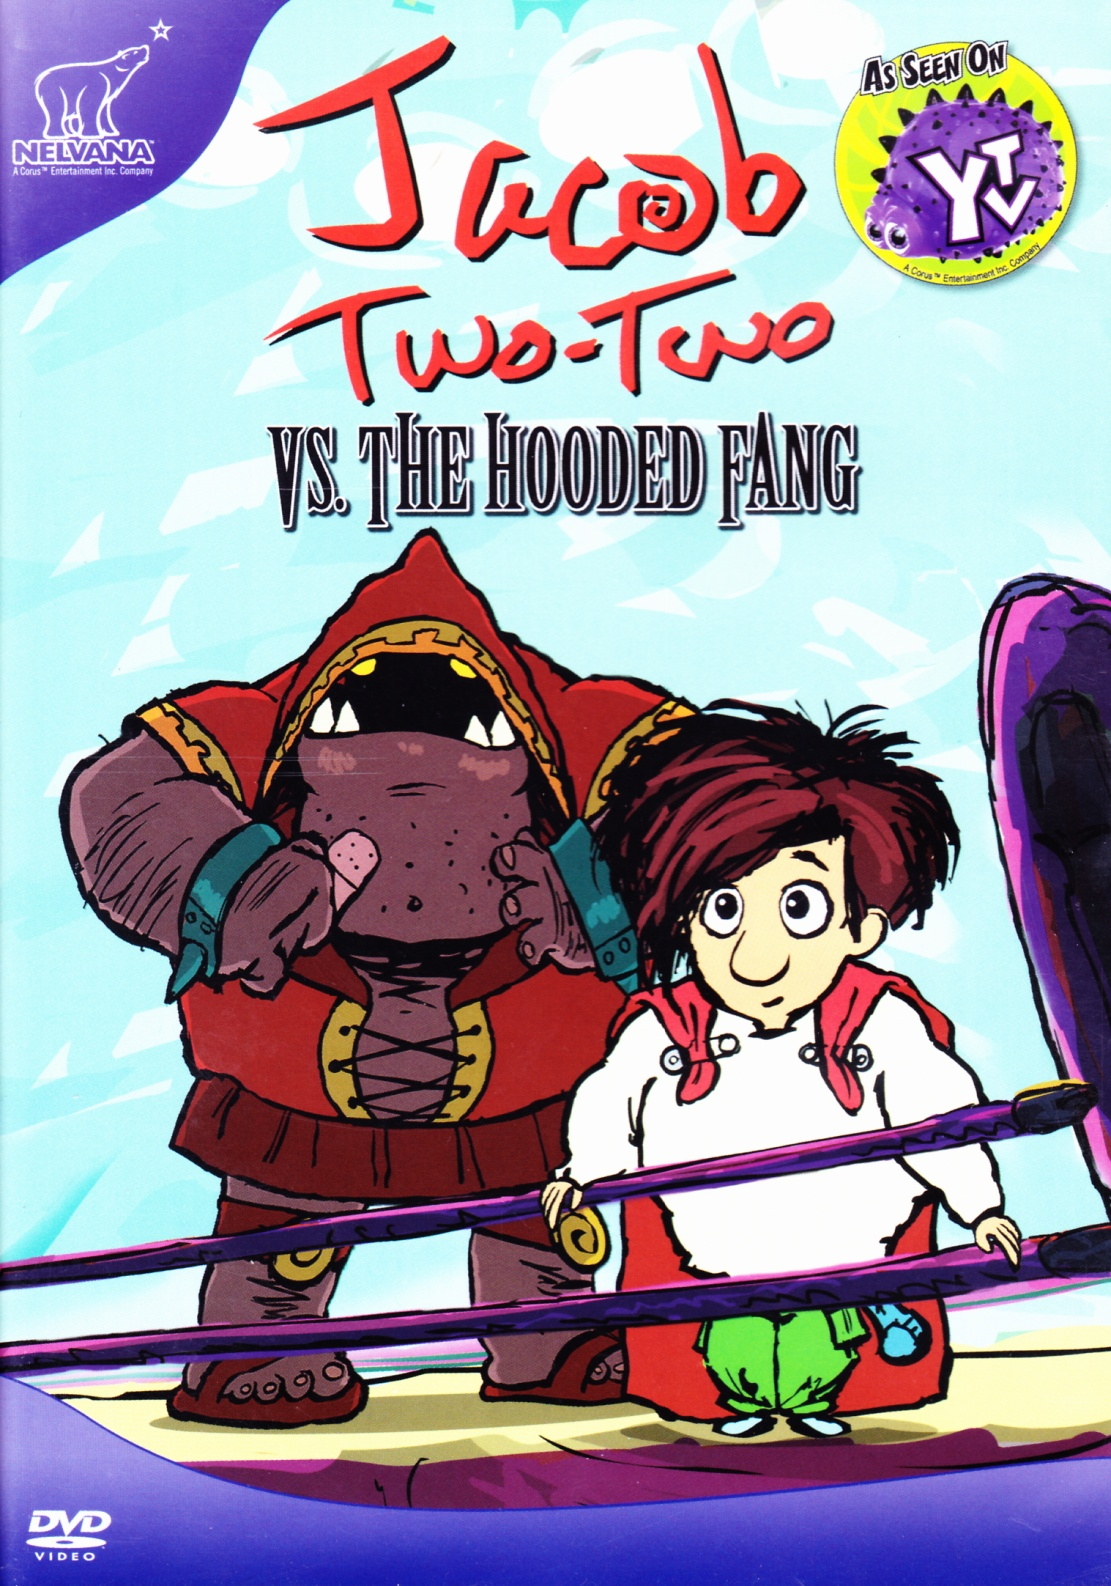 C:\Users\Robert\Documents\CARTOONING ILLUSTRATION ANIMATION\IMAGE CARTOON\IMAGE CARTOON J\JACOB TWO TWO, Jacob Two Two & The Hooded Fang, DVD 2003..jpg